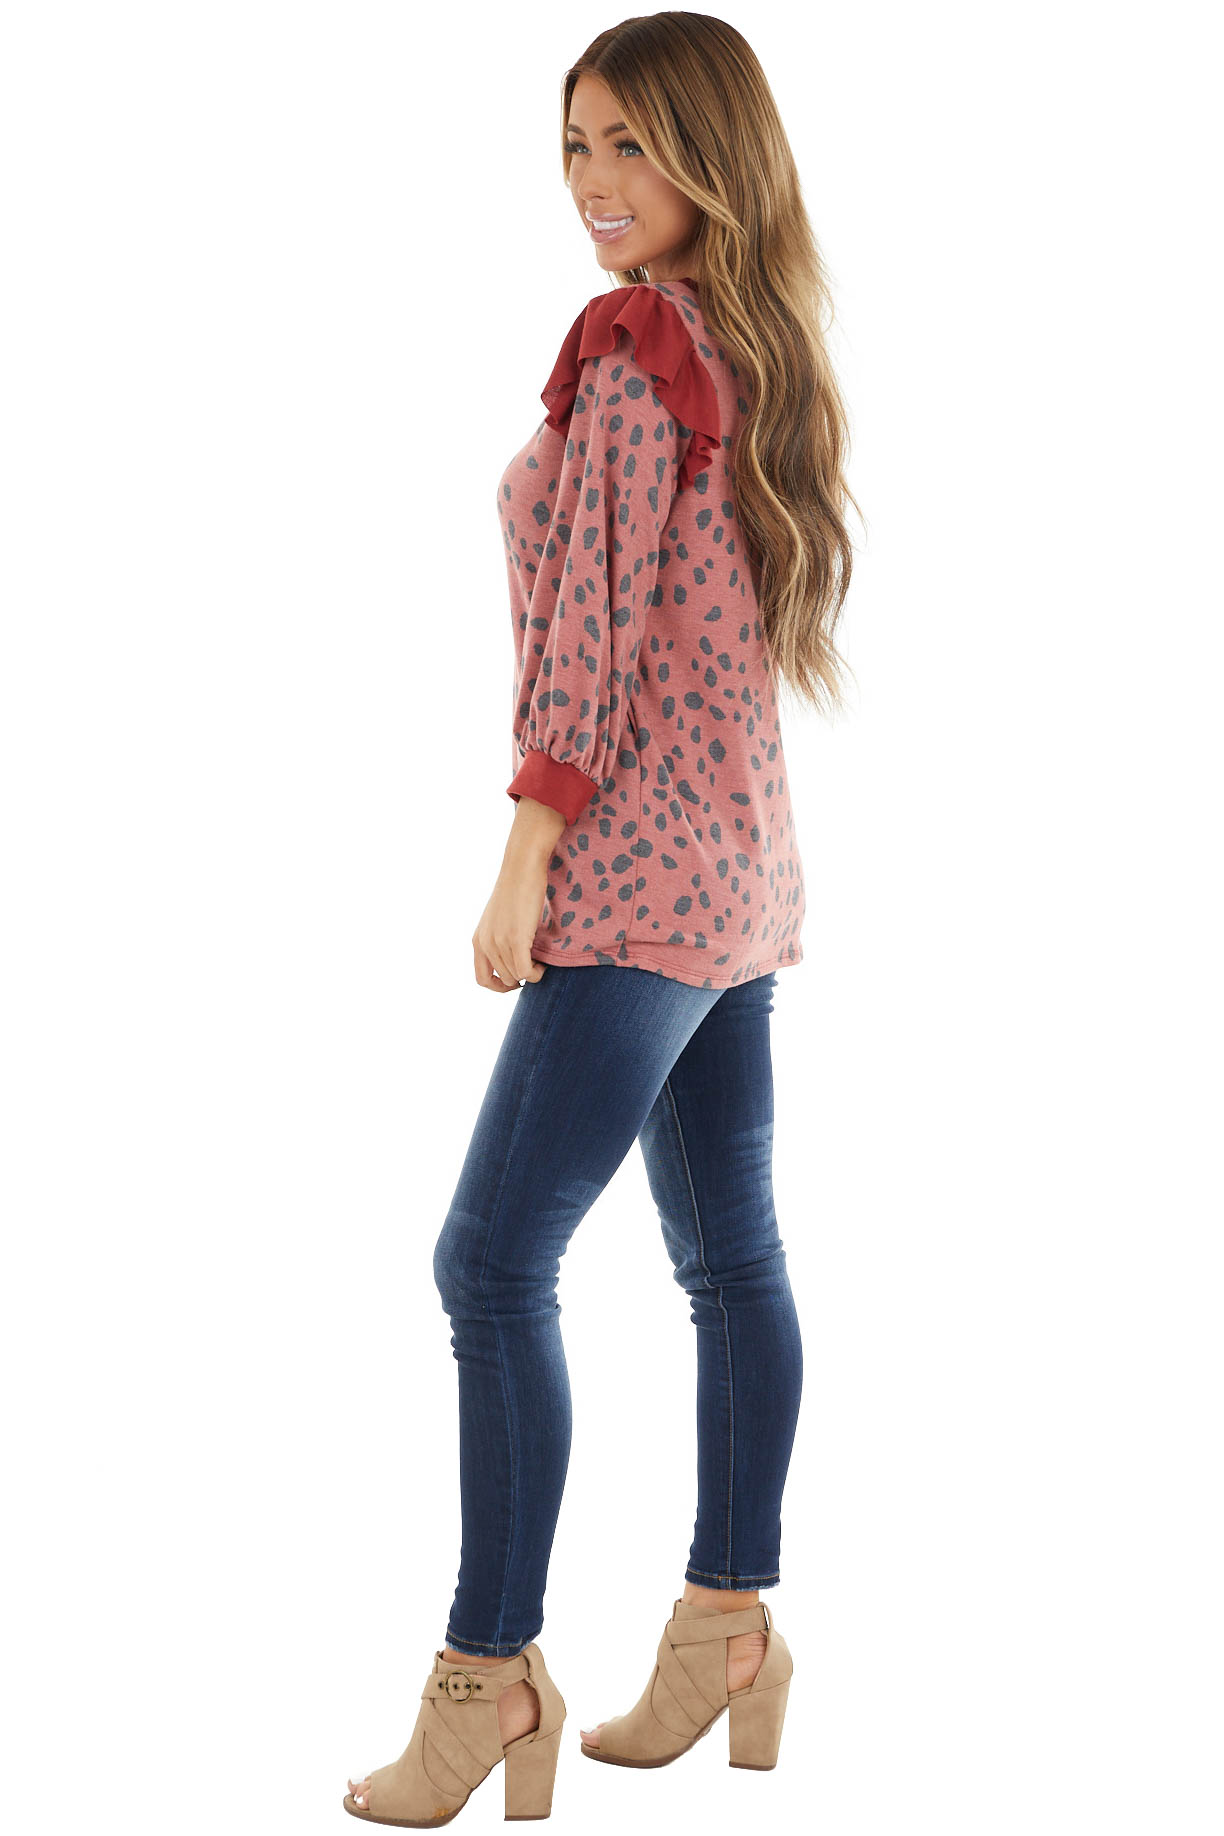 Cherry Cheetah Print Terry Knit Top with Ruffle Details